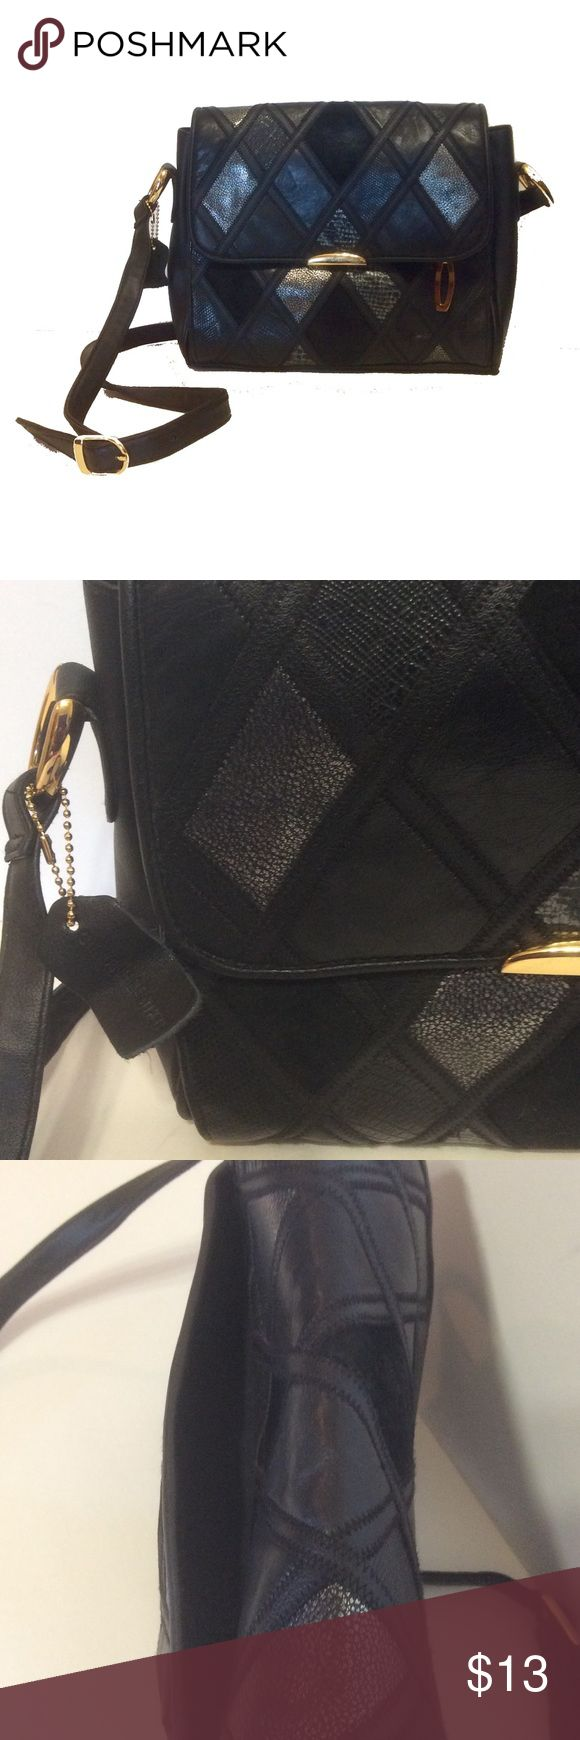 Awesome spacious crossbody bag - authentic leather Preloved in great condition, classy looking and practical, very spacious for its size, lots of compartments, great for everyday or to travel,  10 inches wide x 9 inches height x 2.5 inches wide, great as shoulder bag or as crossbody, by Cabin Creek, authentic leather Bags Crossbody Bags